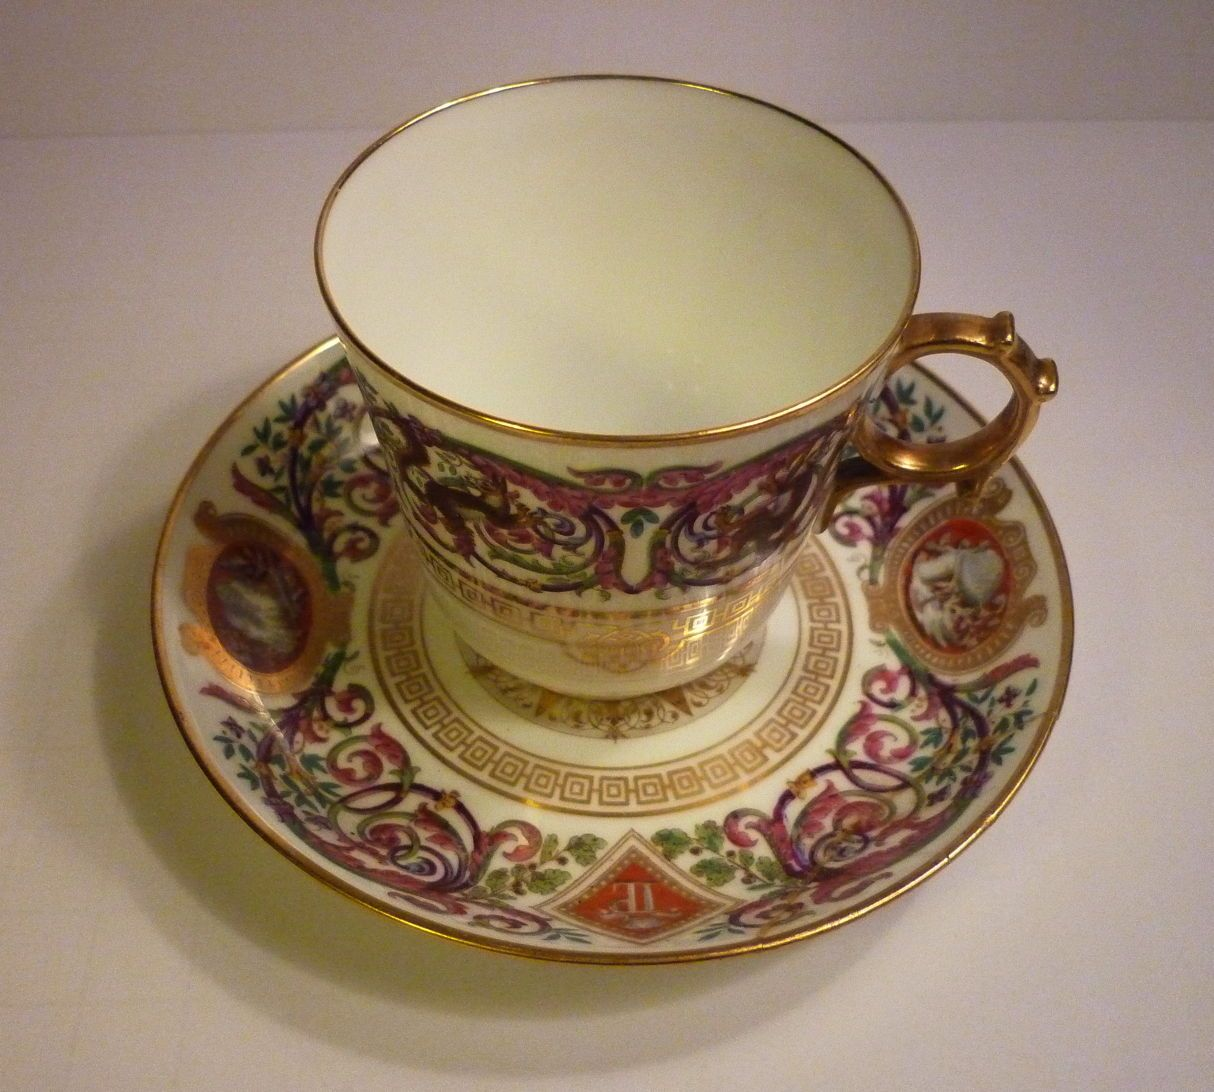 Antique C 1873 Sevres Cup and Saucer | eBay